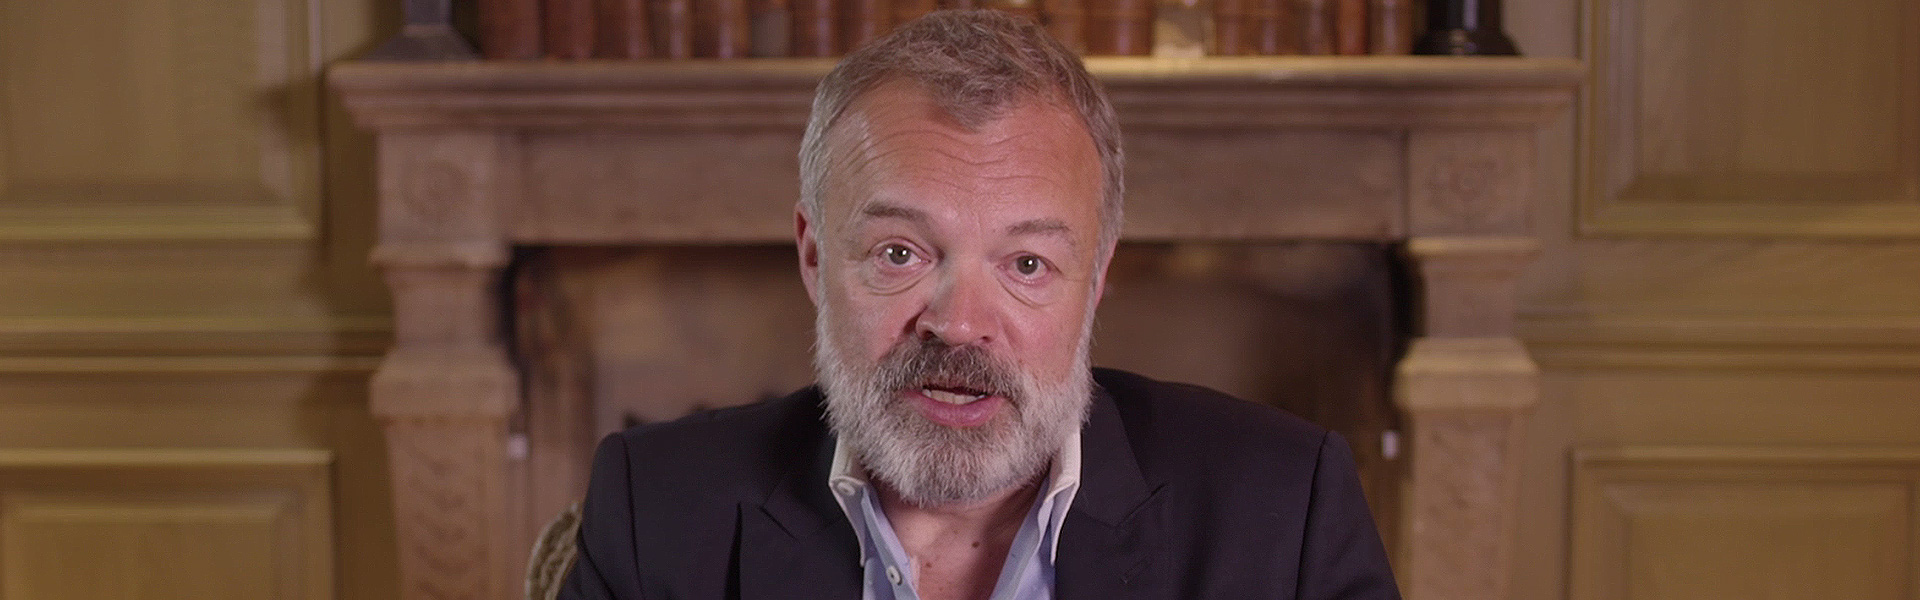 Graham Norton Introduces his First Novel Holding